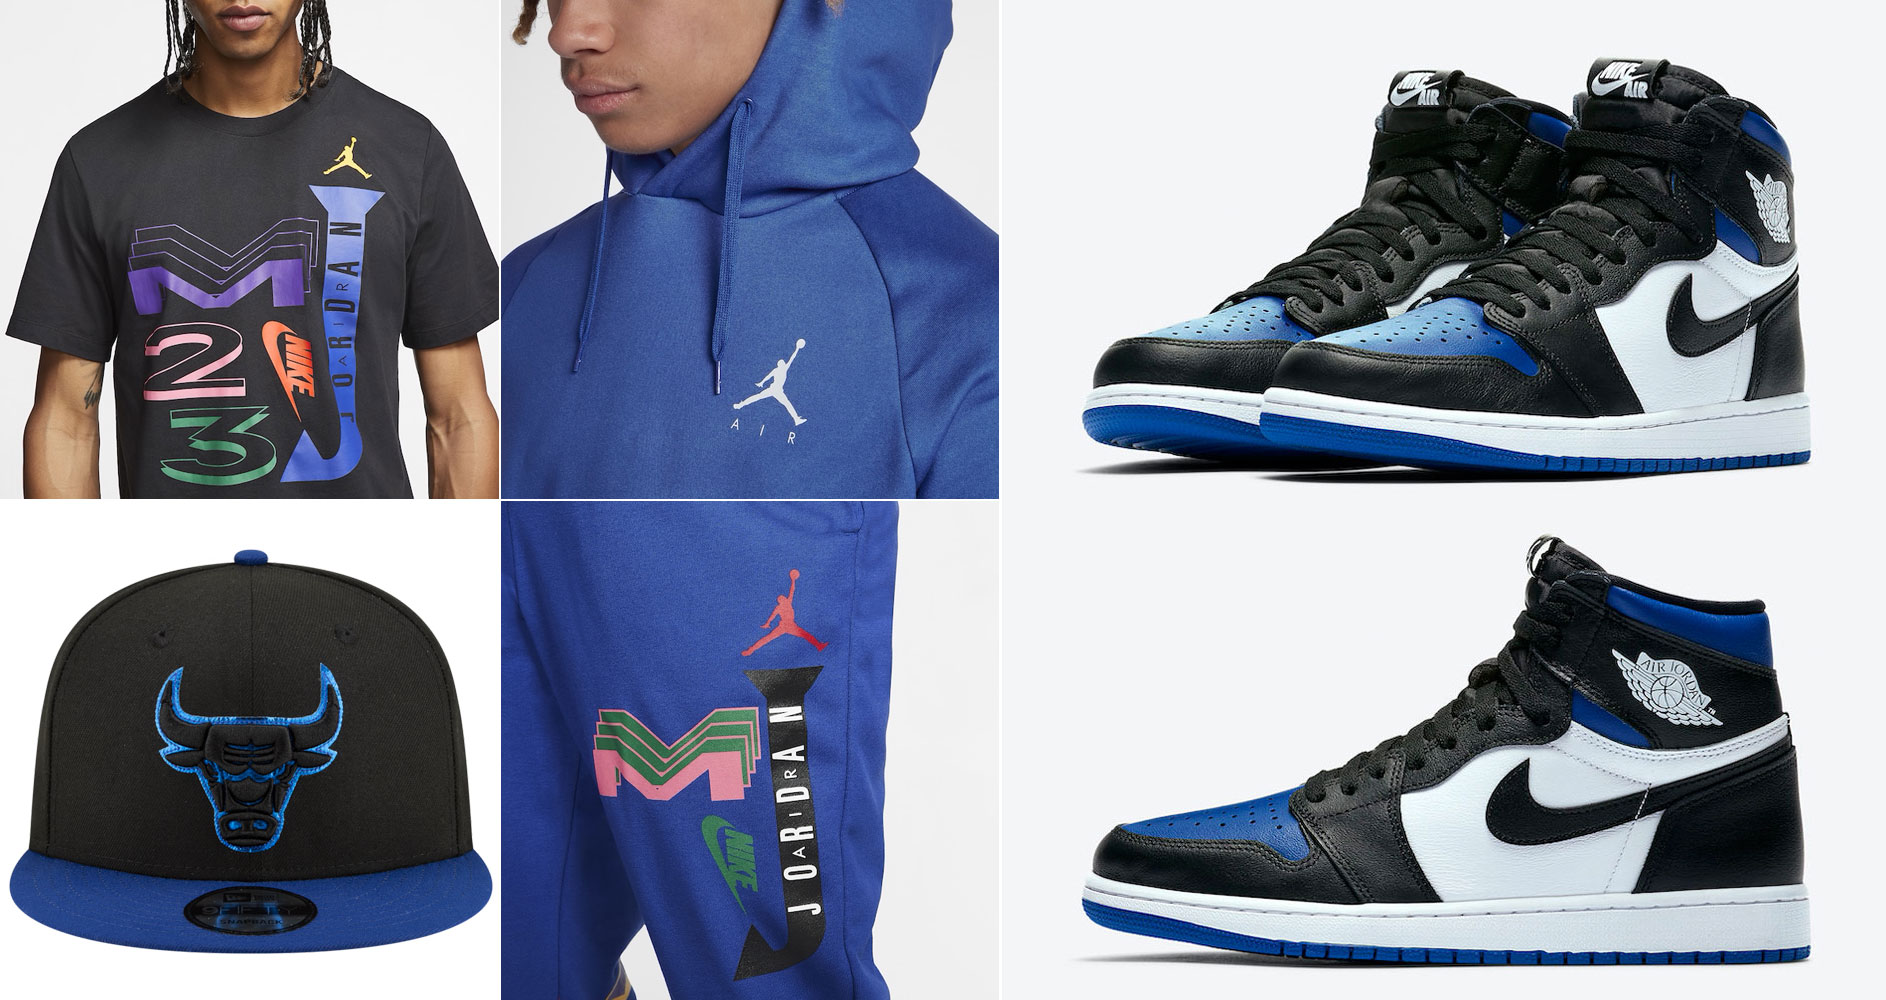 air-jordan-1-high-game-royal-toe-clothing-outfits